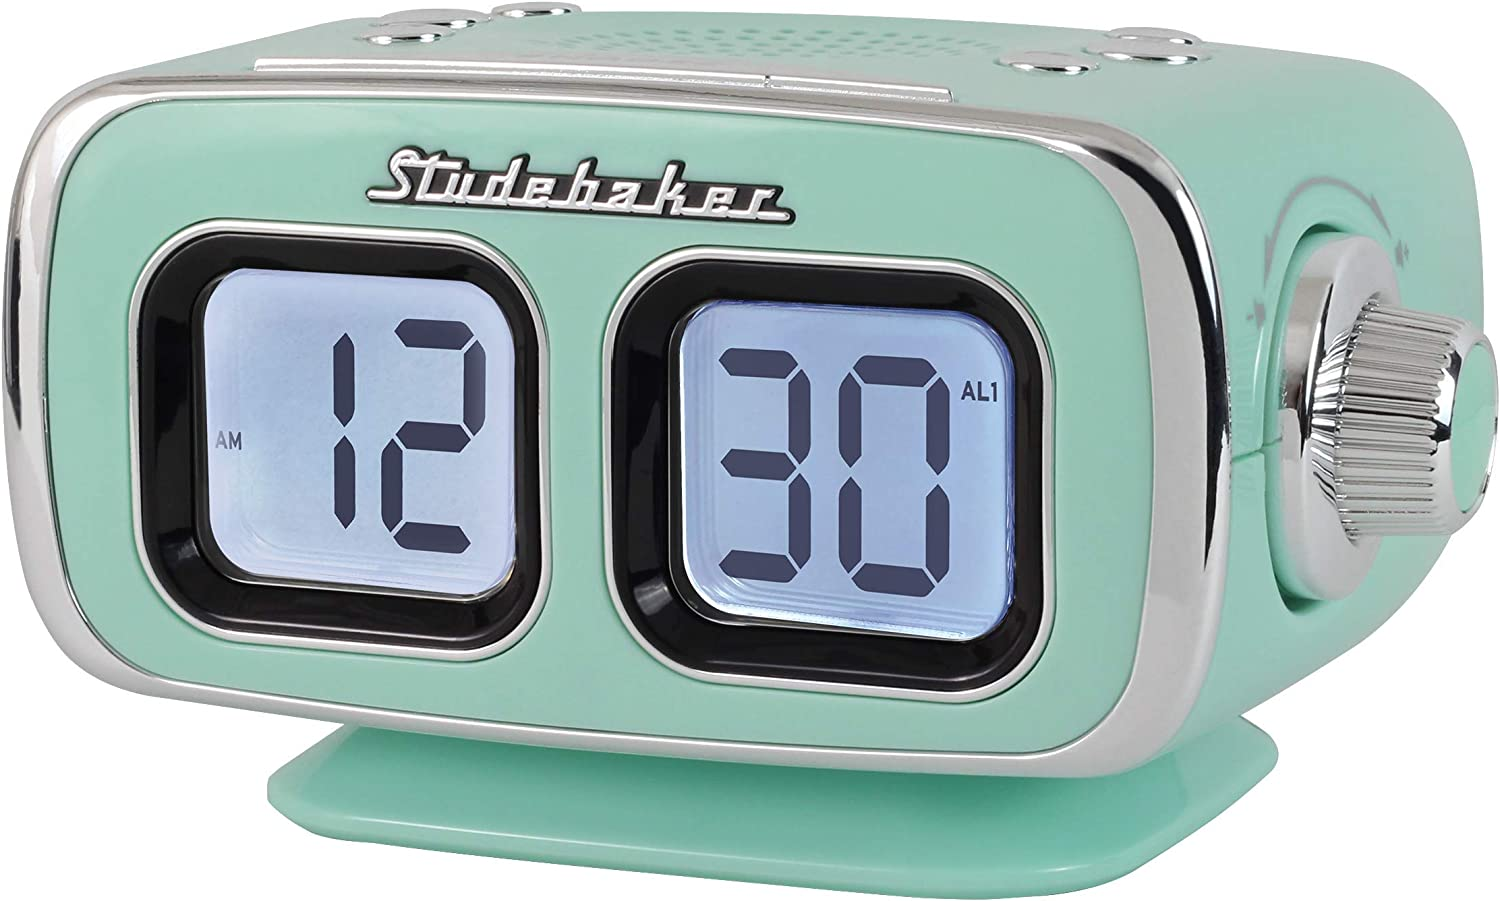 Retro Style Large Display LCD AM/FM Clock